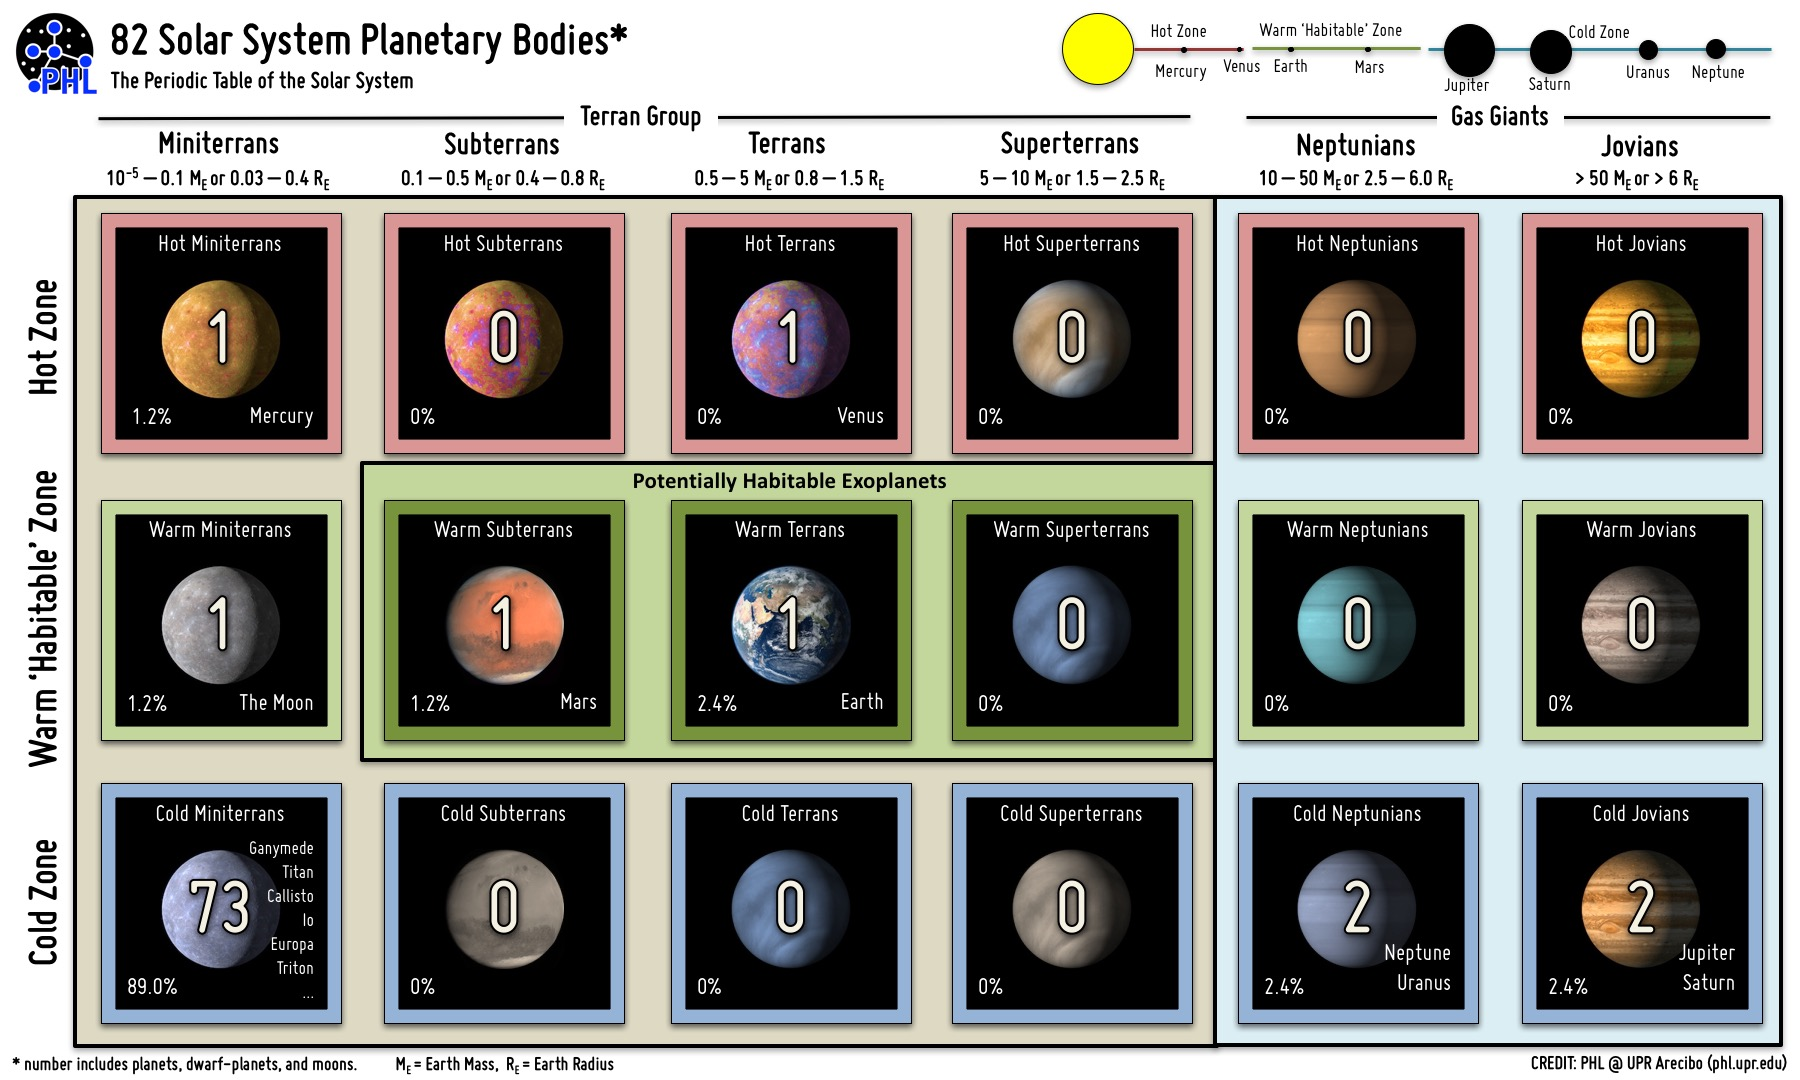 The periodic table of the Solar System objects (planets, moon, dwarf planets, and trans-Neptunian objects). Sizes of objects increase from left to right and the temperatures of objects increase from bottom to top. In our Solar System the moons of Jovian planets, dwarf planets, and other trans-Neptunian objects heavily populate the cold zone of Miniterrans